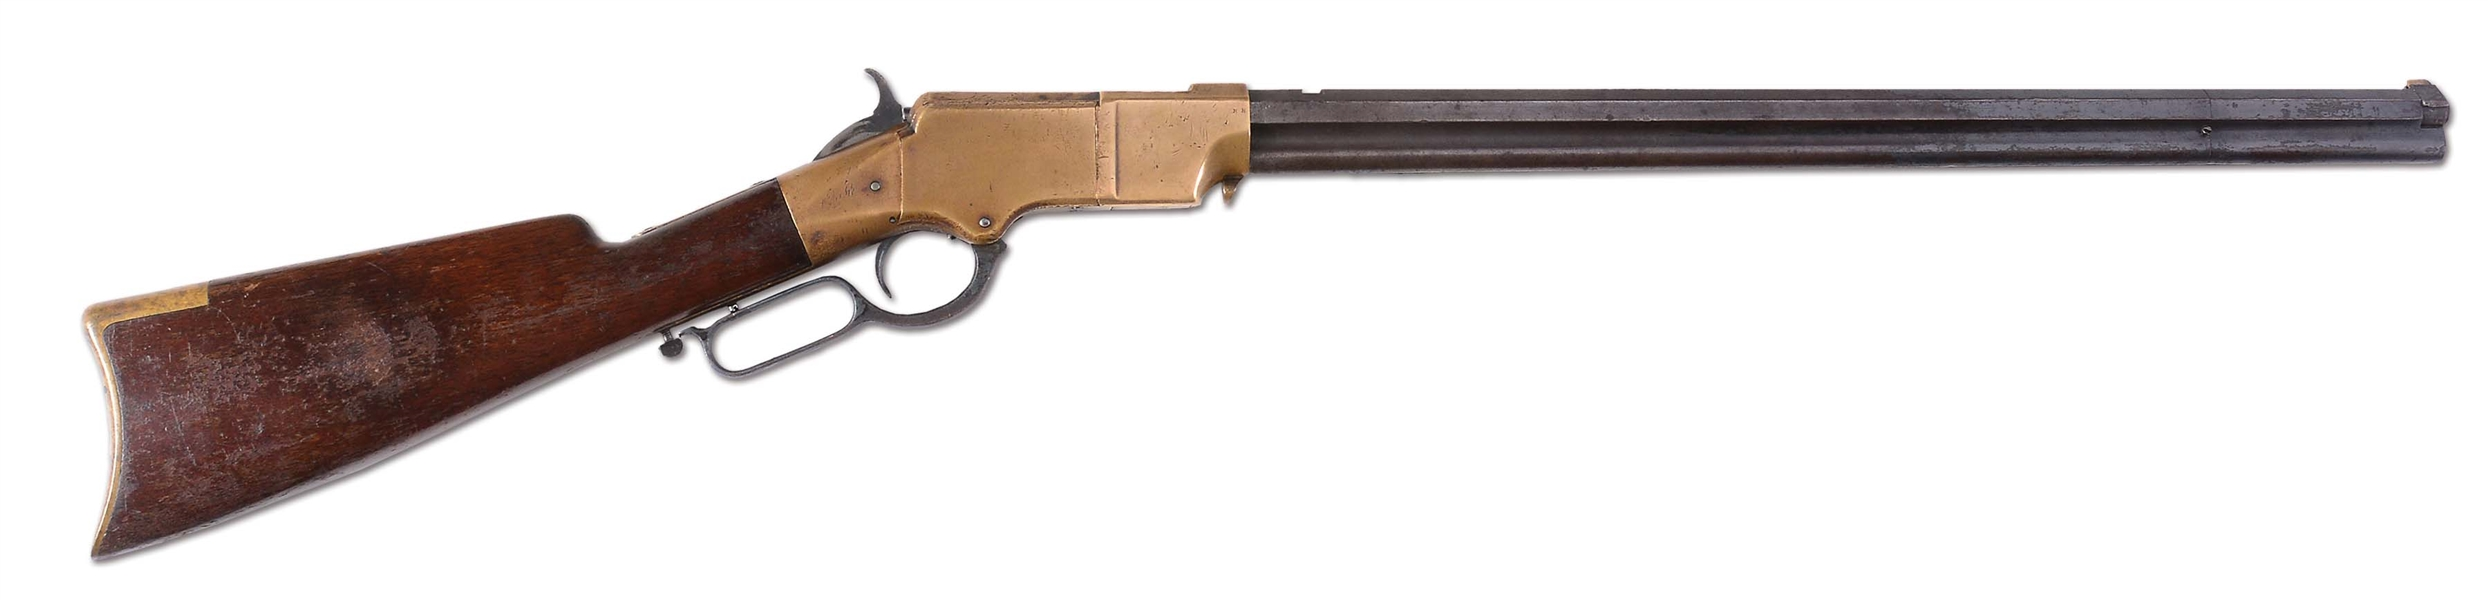 (A) WINCHESTER MARTIALLY MARKED MODEL 1860 HENRY LEVER ACTION RIFLE (1863).